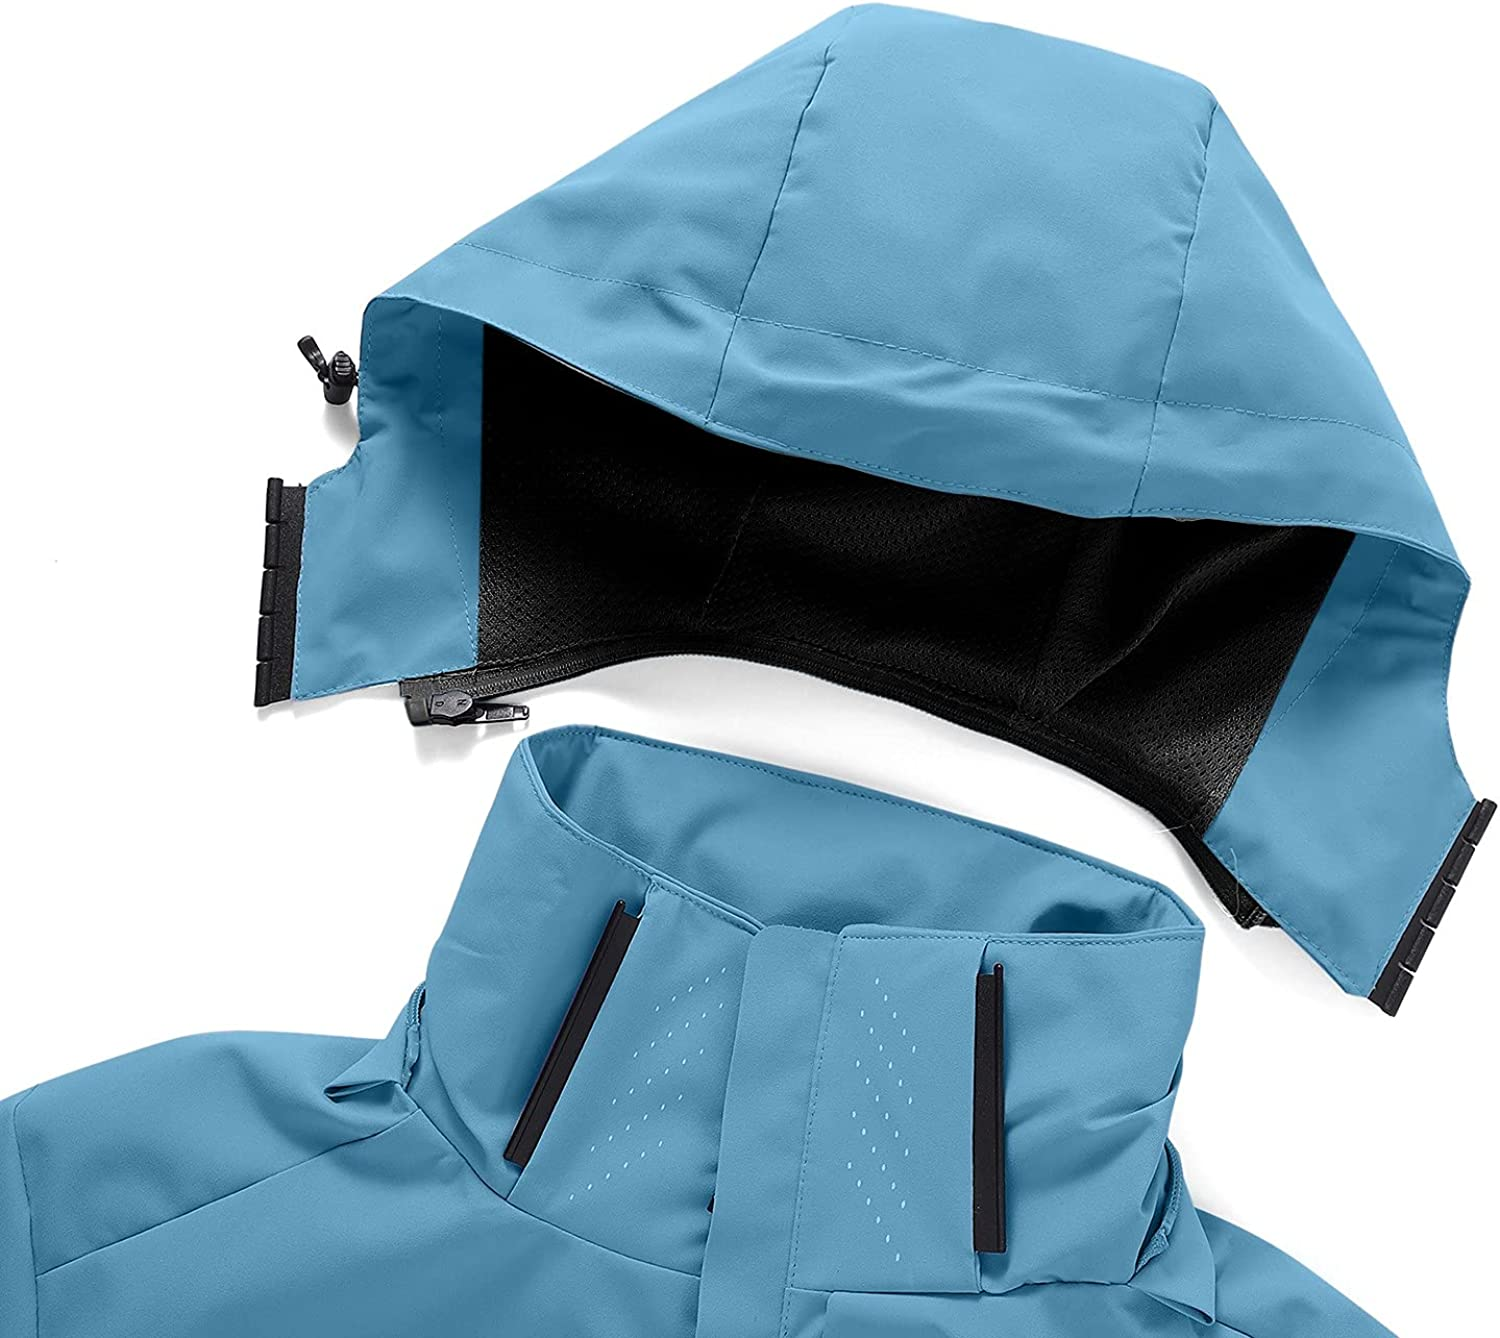 Men's Windbreaker Zipper Removable Hoodie Waterproof Raincoat Outdoor Thin Plus Size Trench Coat Blouse with Pockets